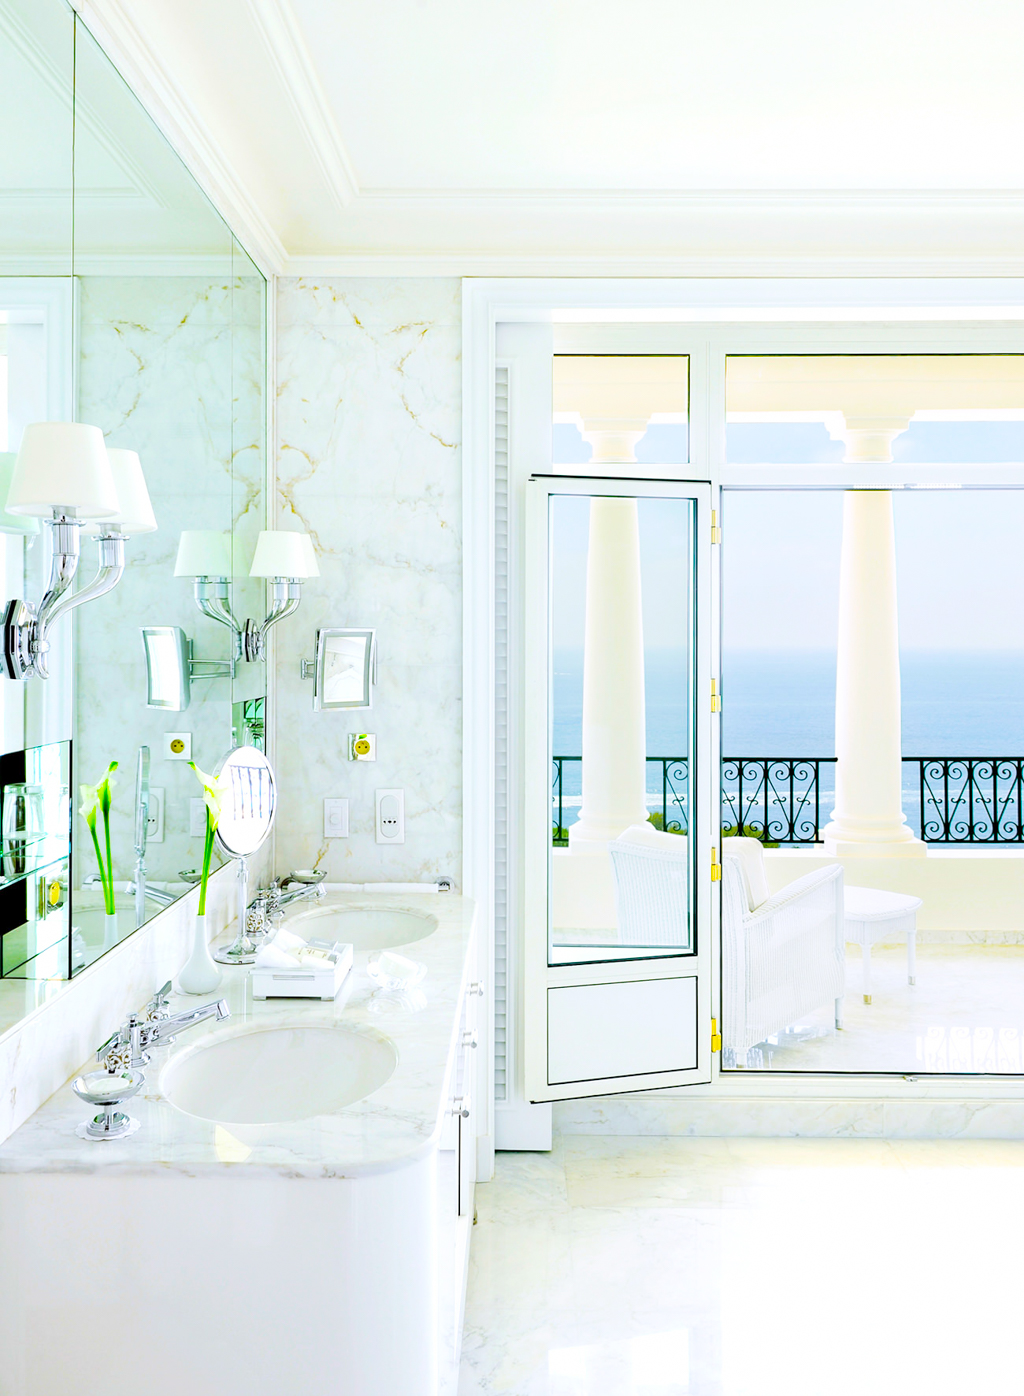 Bathroom in Suite #306, Le Grand-Hotel du Cap-Ferrat, France Jun